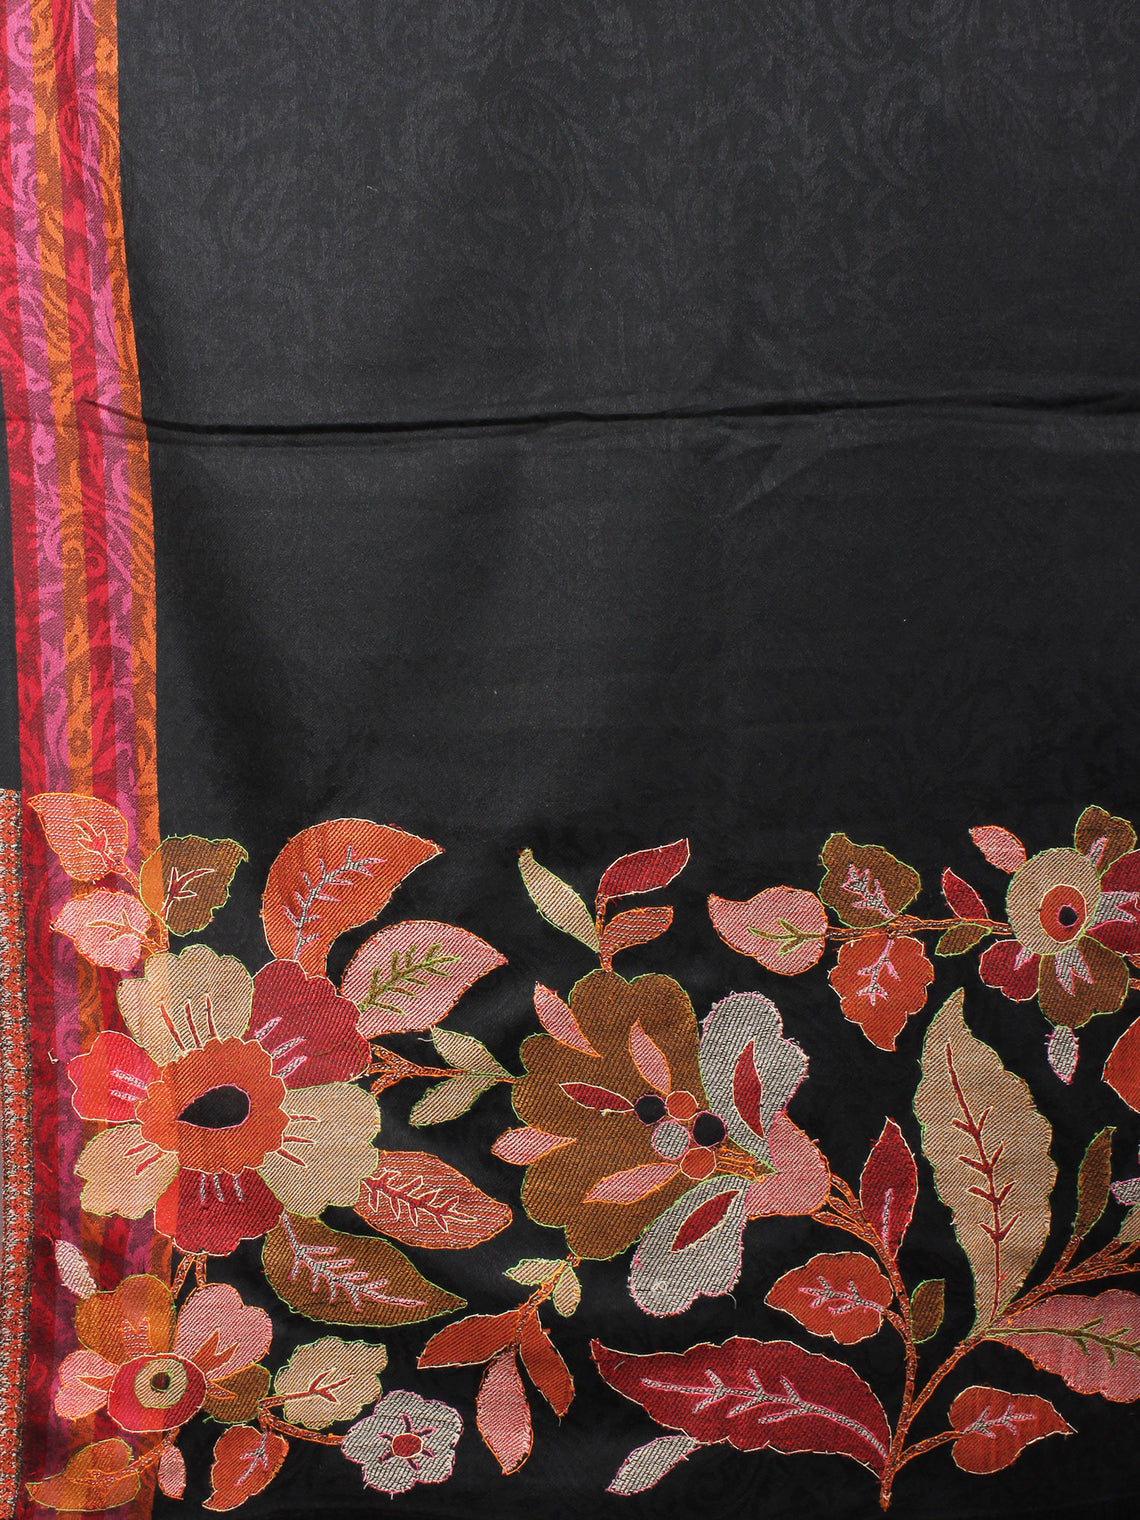 Black Brown Maroon Cashmere Shawl in Paisley-Self With Sozni Border From Kashmir - S200201